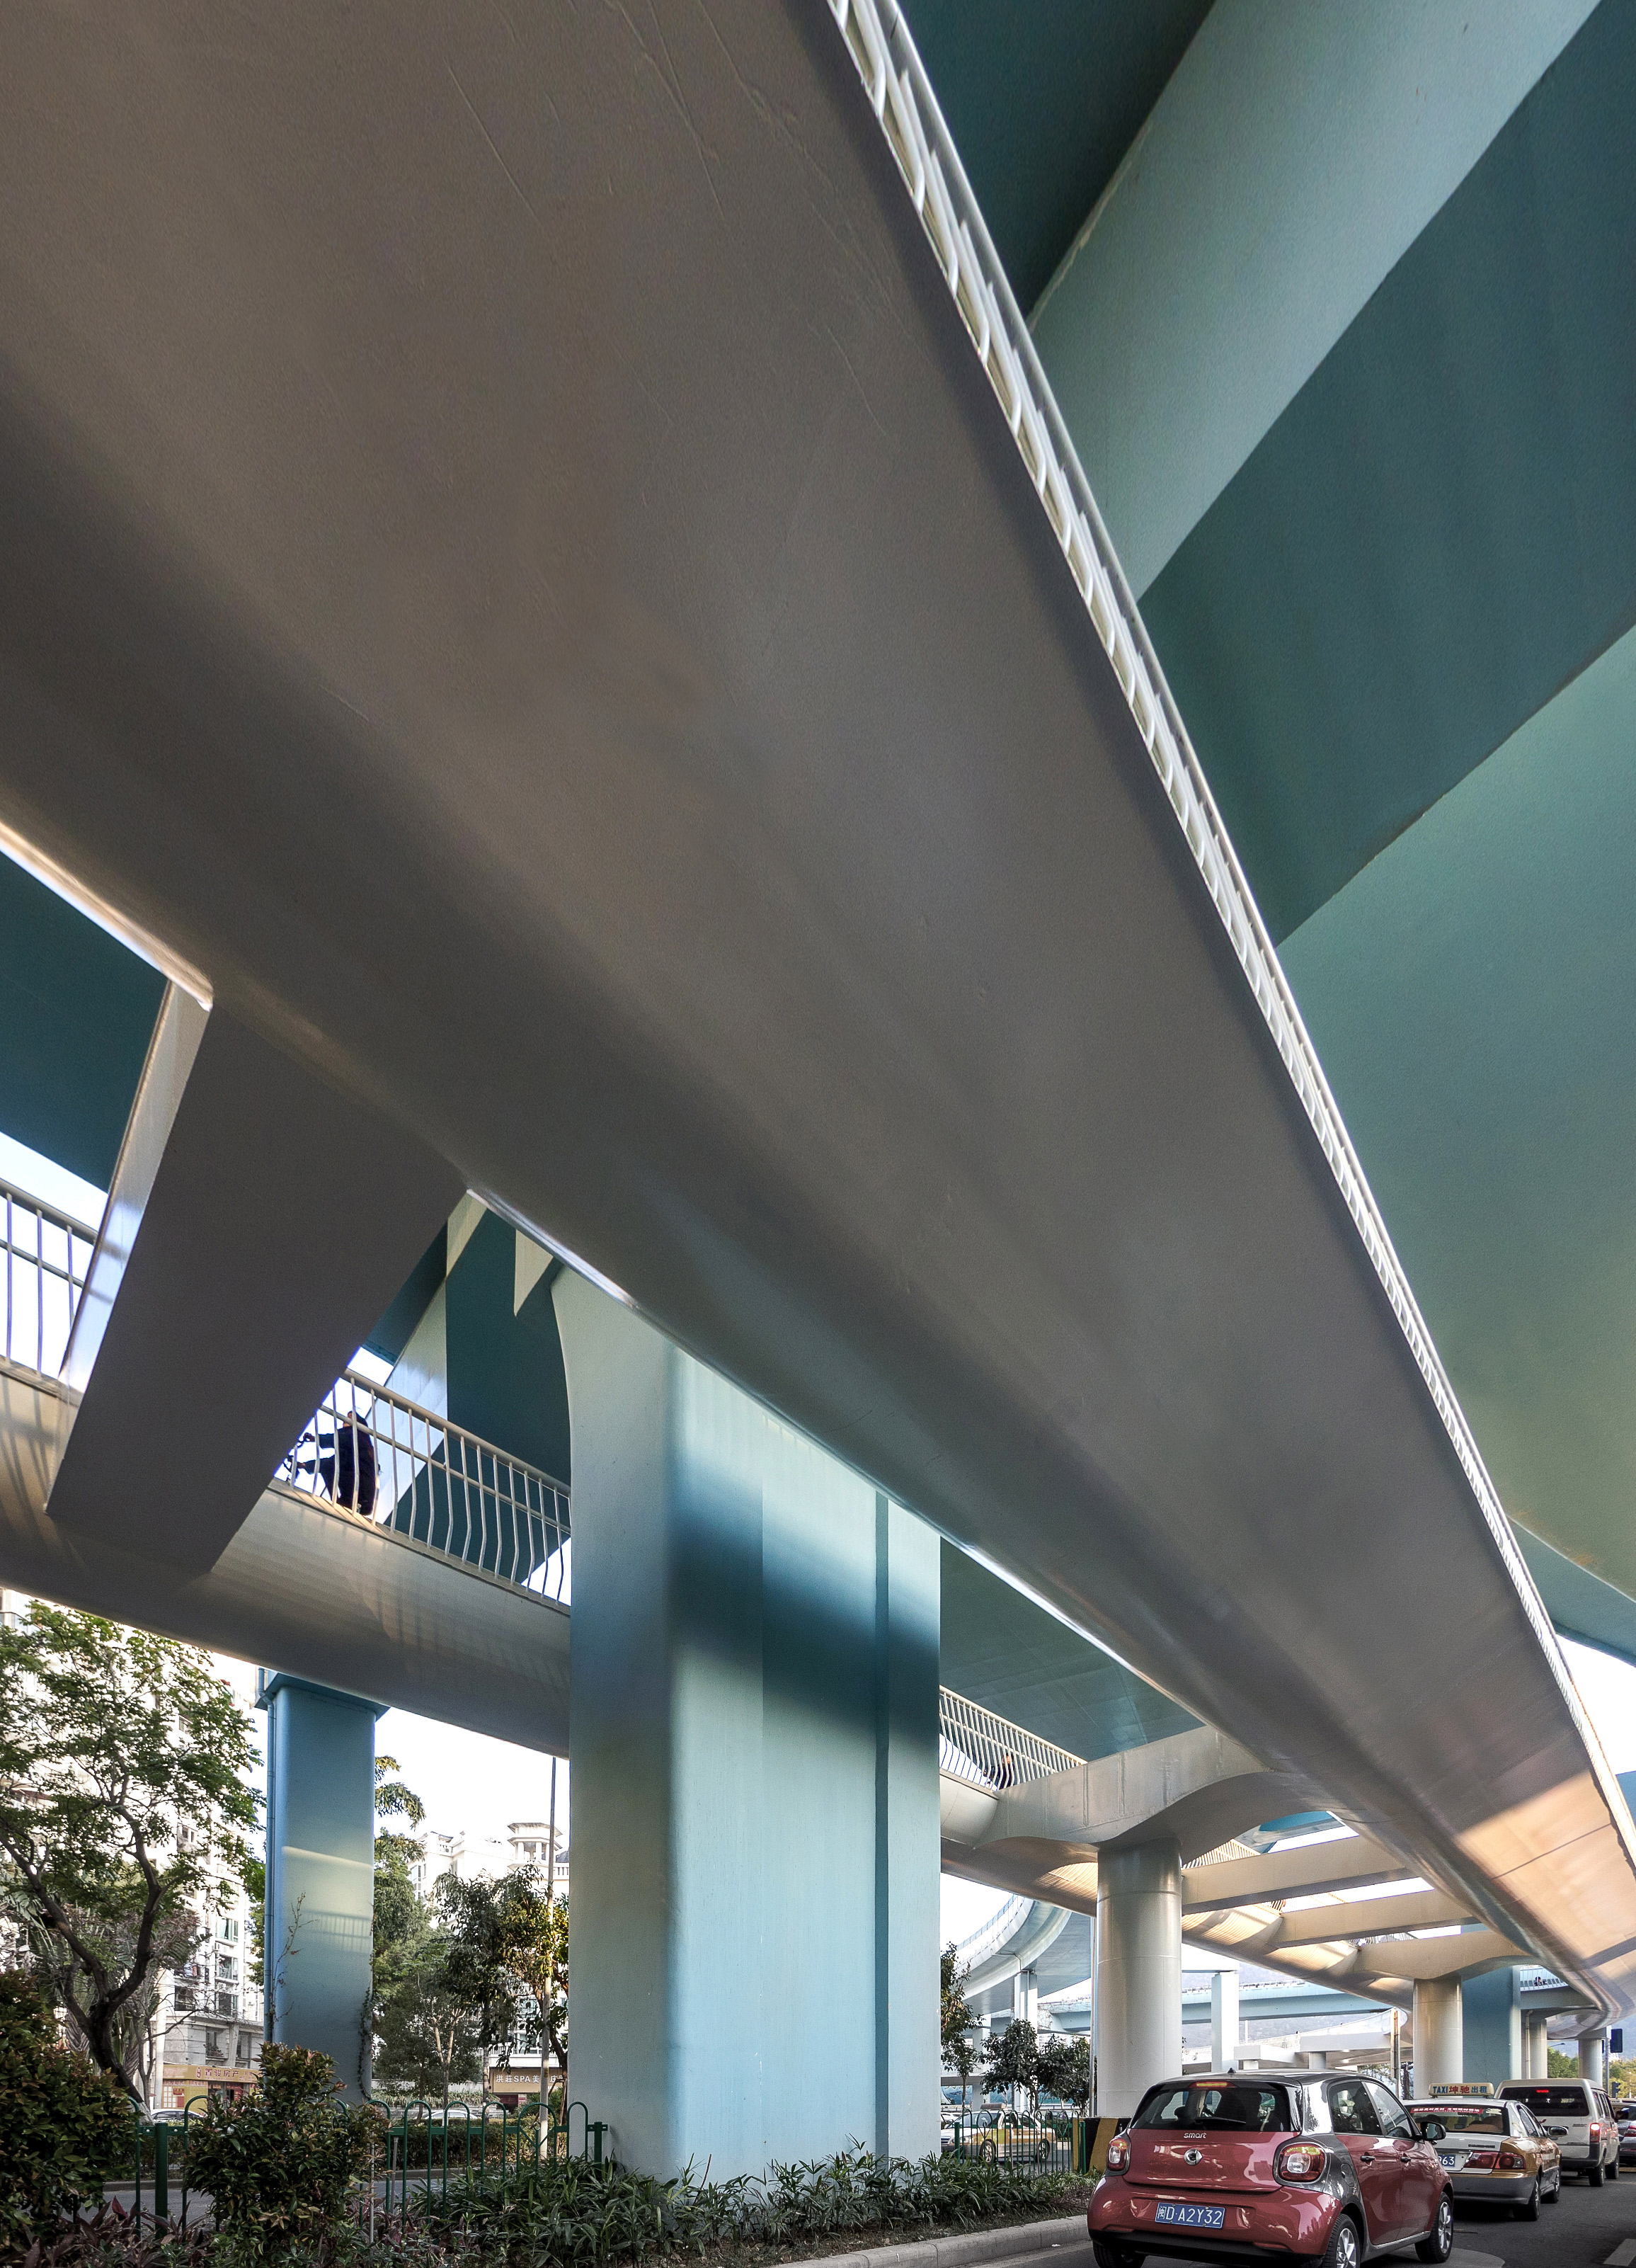 DW-Xiamen-Skyway-underside-detail.jpg